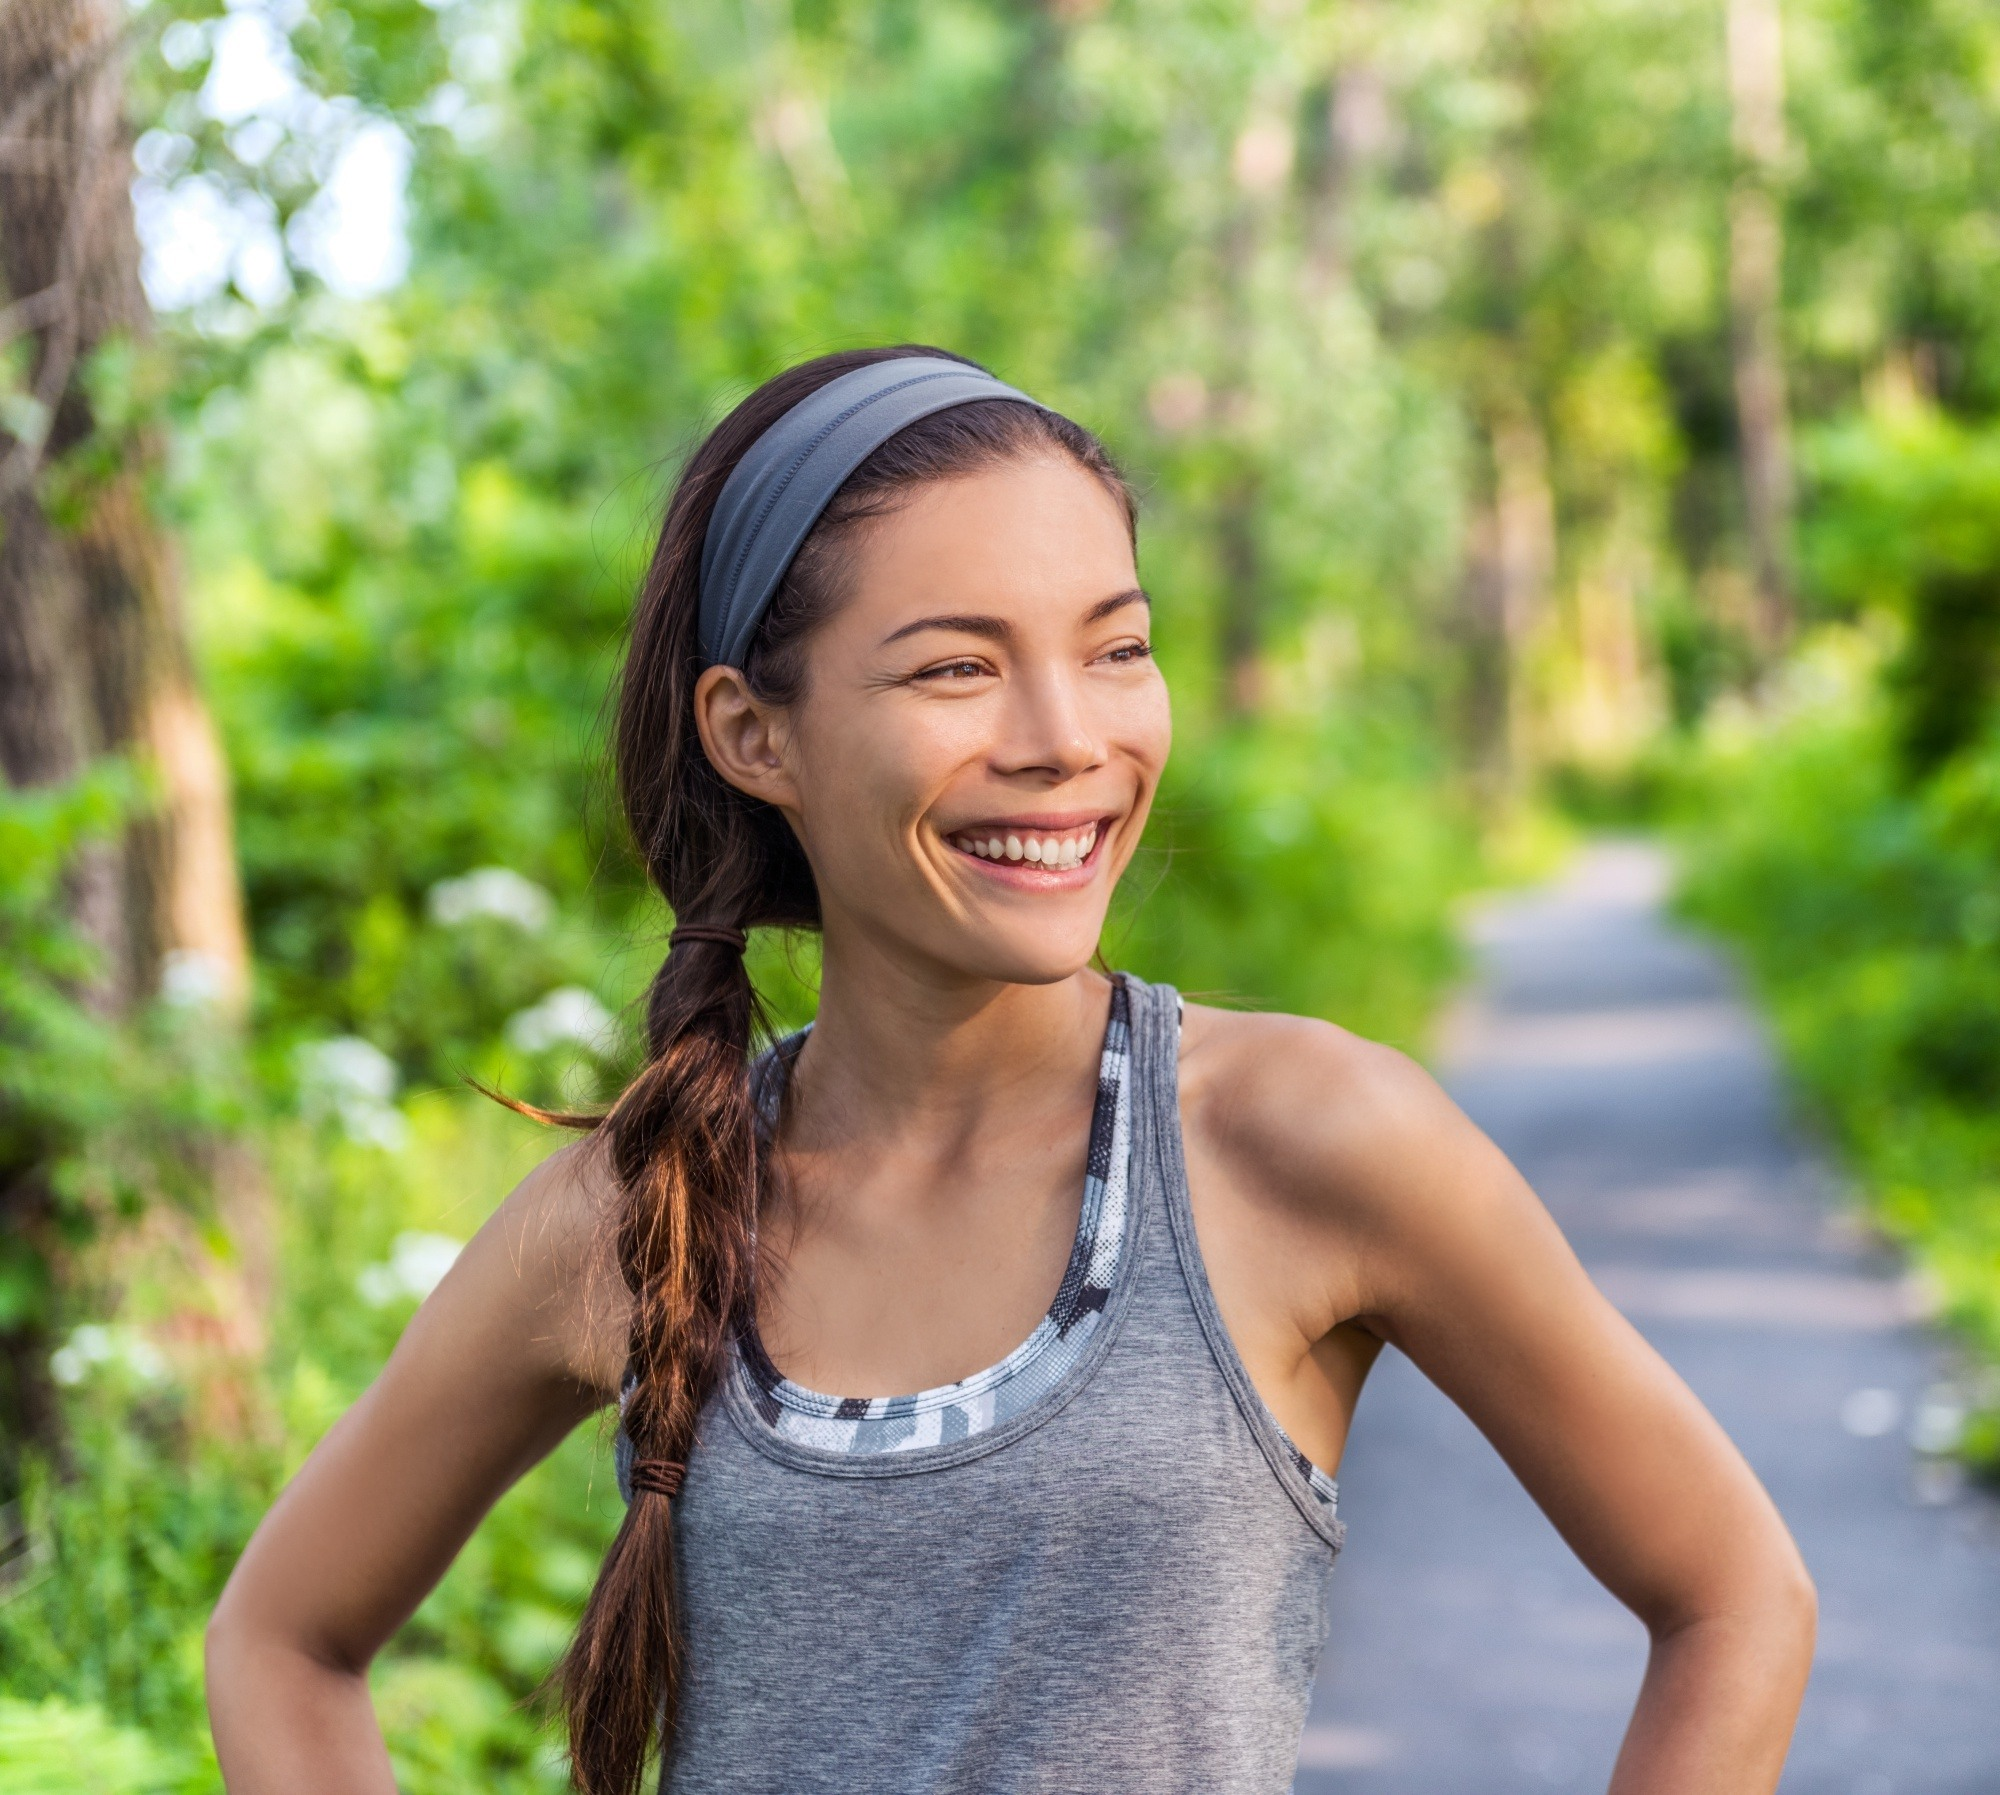 Headband hairstyles: Asian woman with long brown braided hair wearing a gray headband and gray workout top outdoors